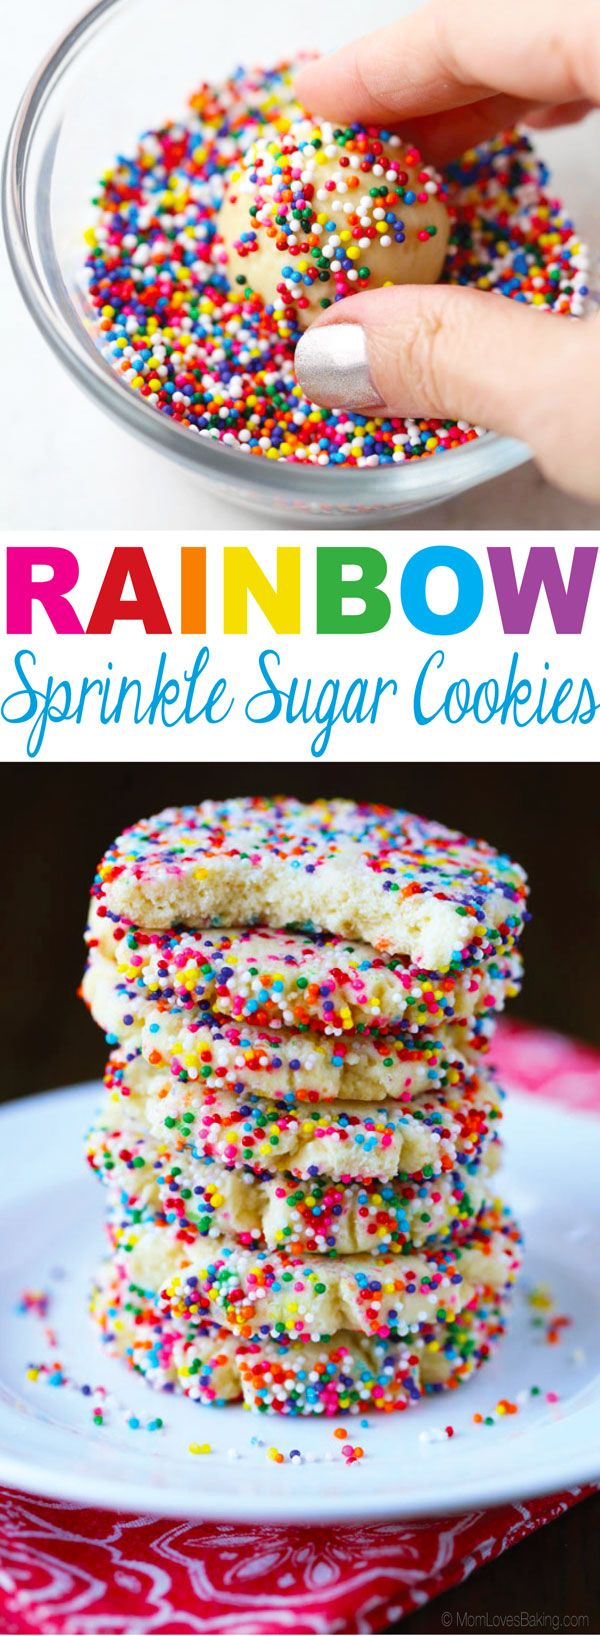 Rainbow Sprinkle Sugar Cookies are great gift for a neighbor or teacher! Put them on a pretty plate, cover with clear plastic and stick a bow on top. Voila! A tasty gift for someone special this holiday season. #intheraw #Sponsored